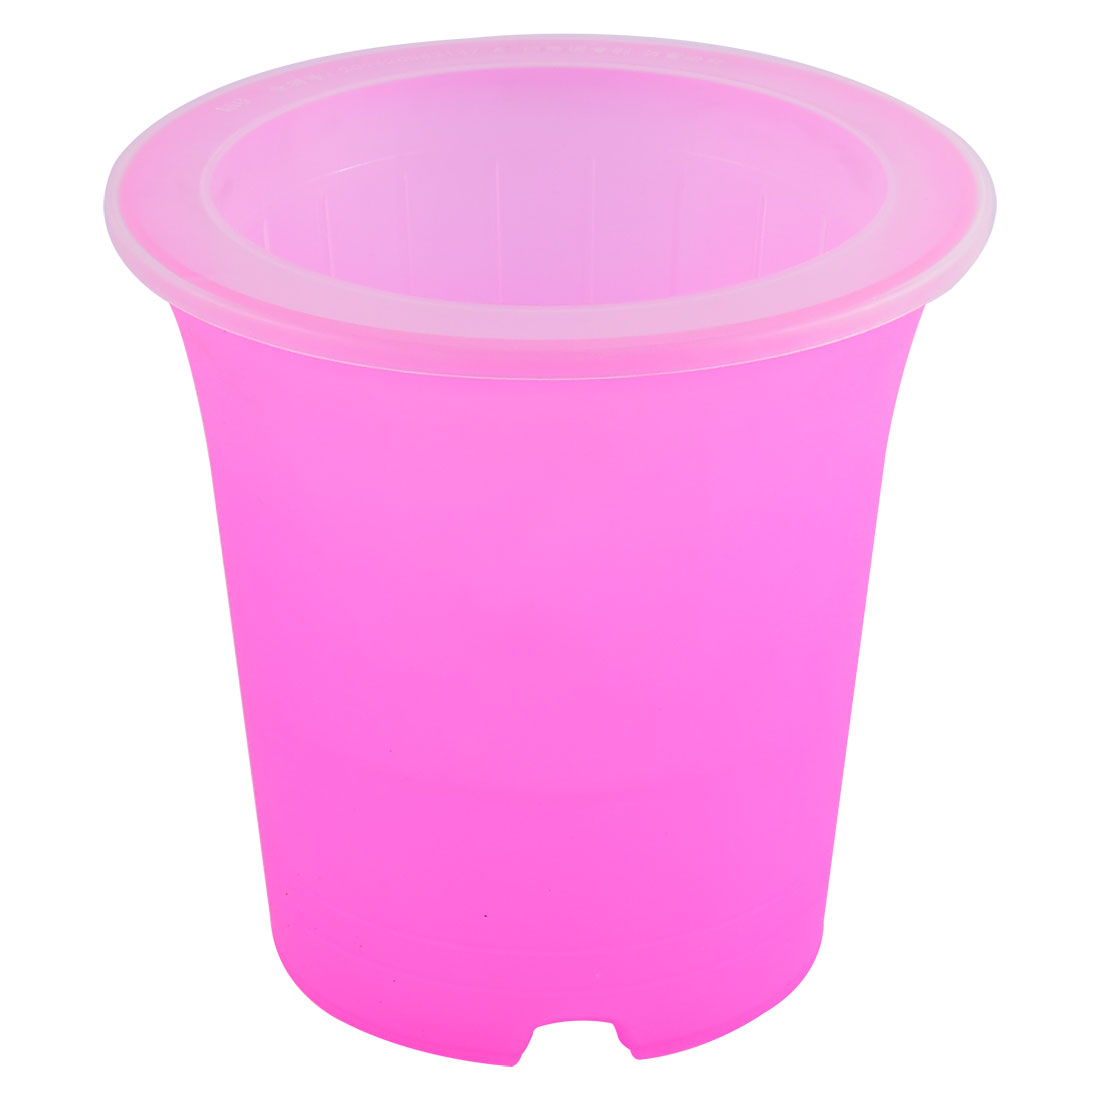 Plastic Double Layers Self Watering Planter Flower Pot Container Fuchsia